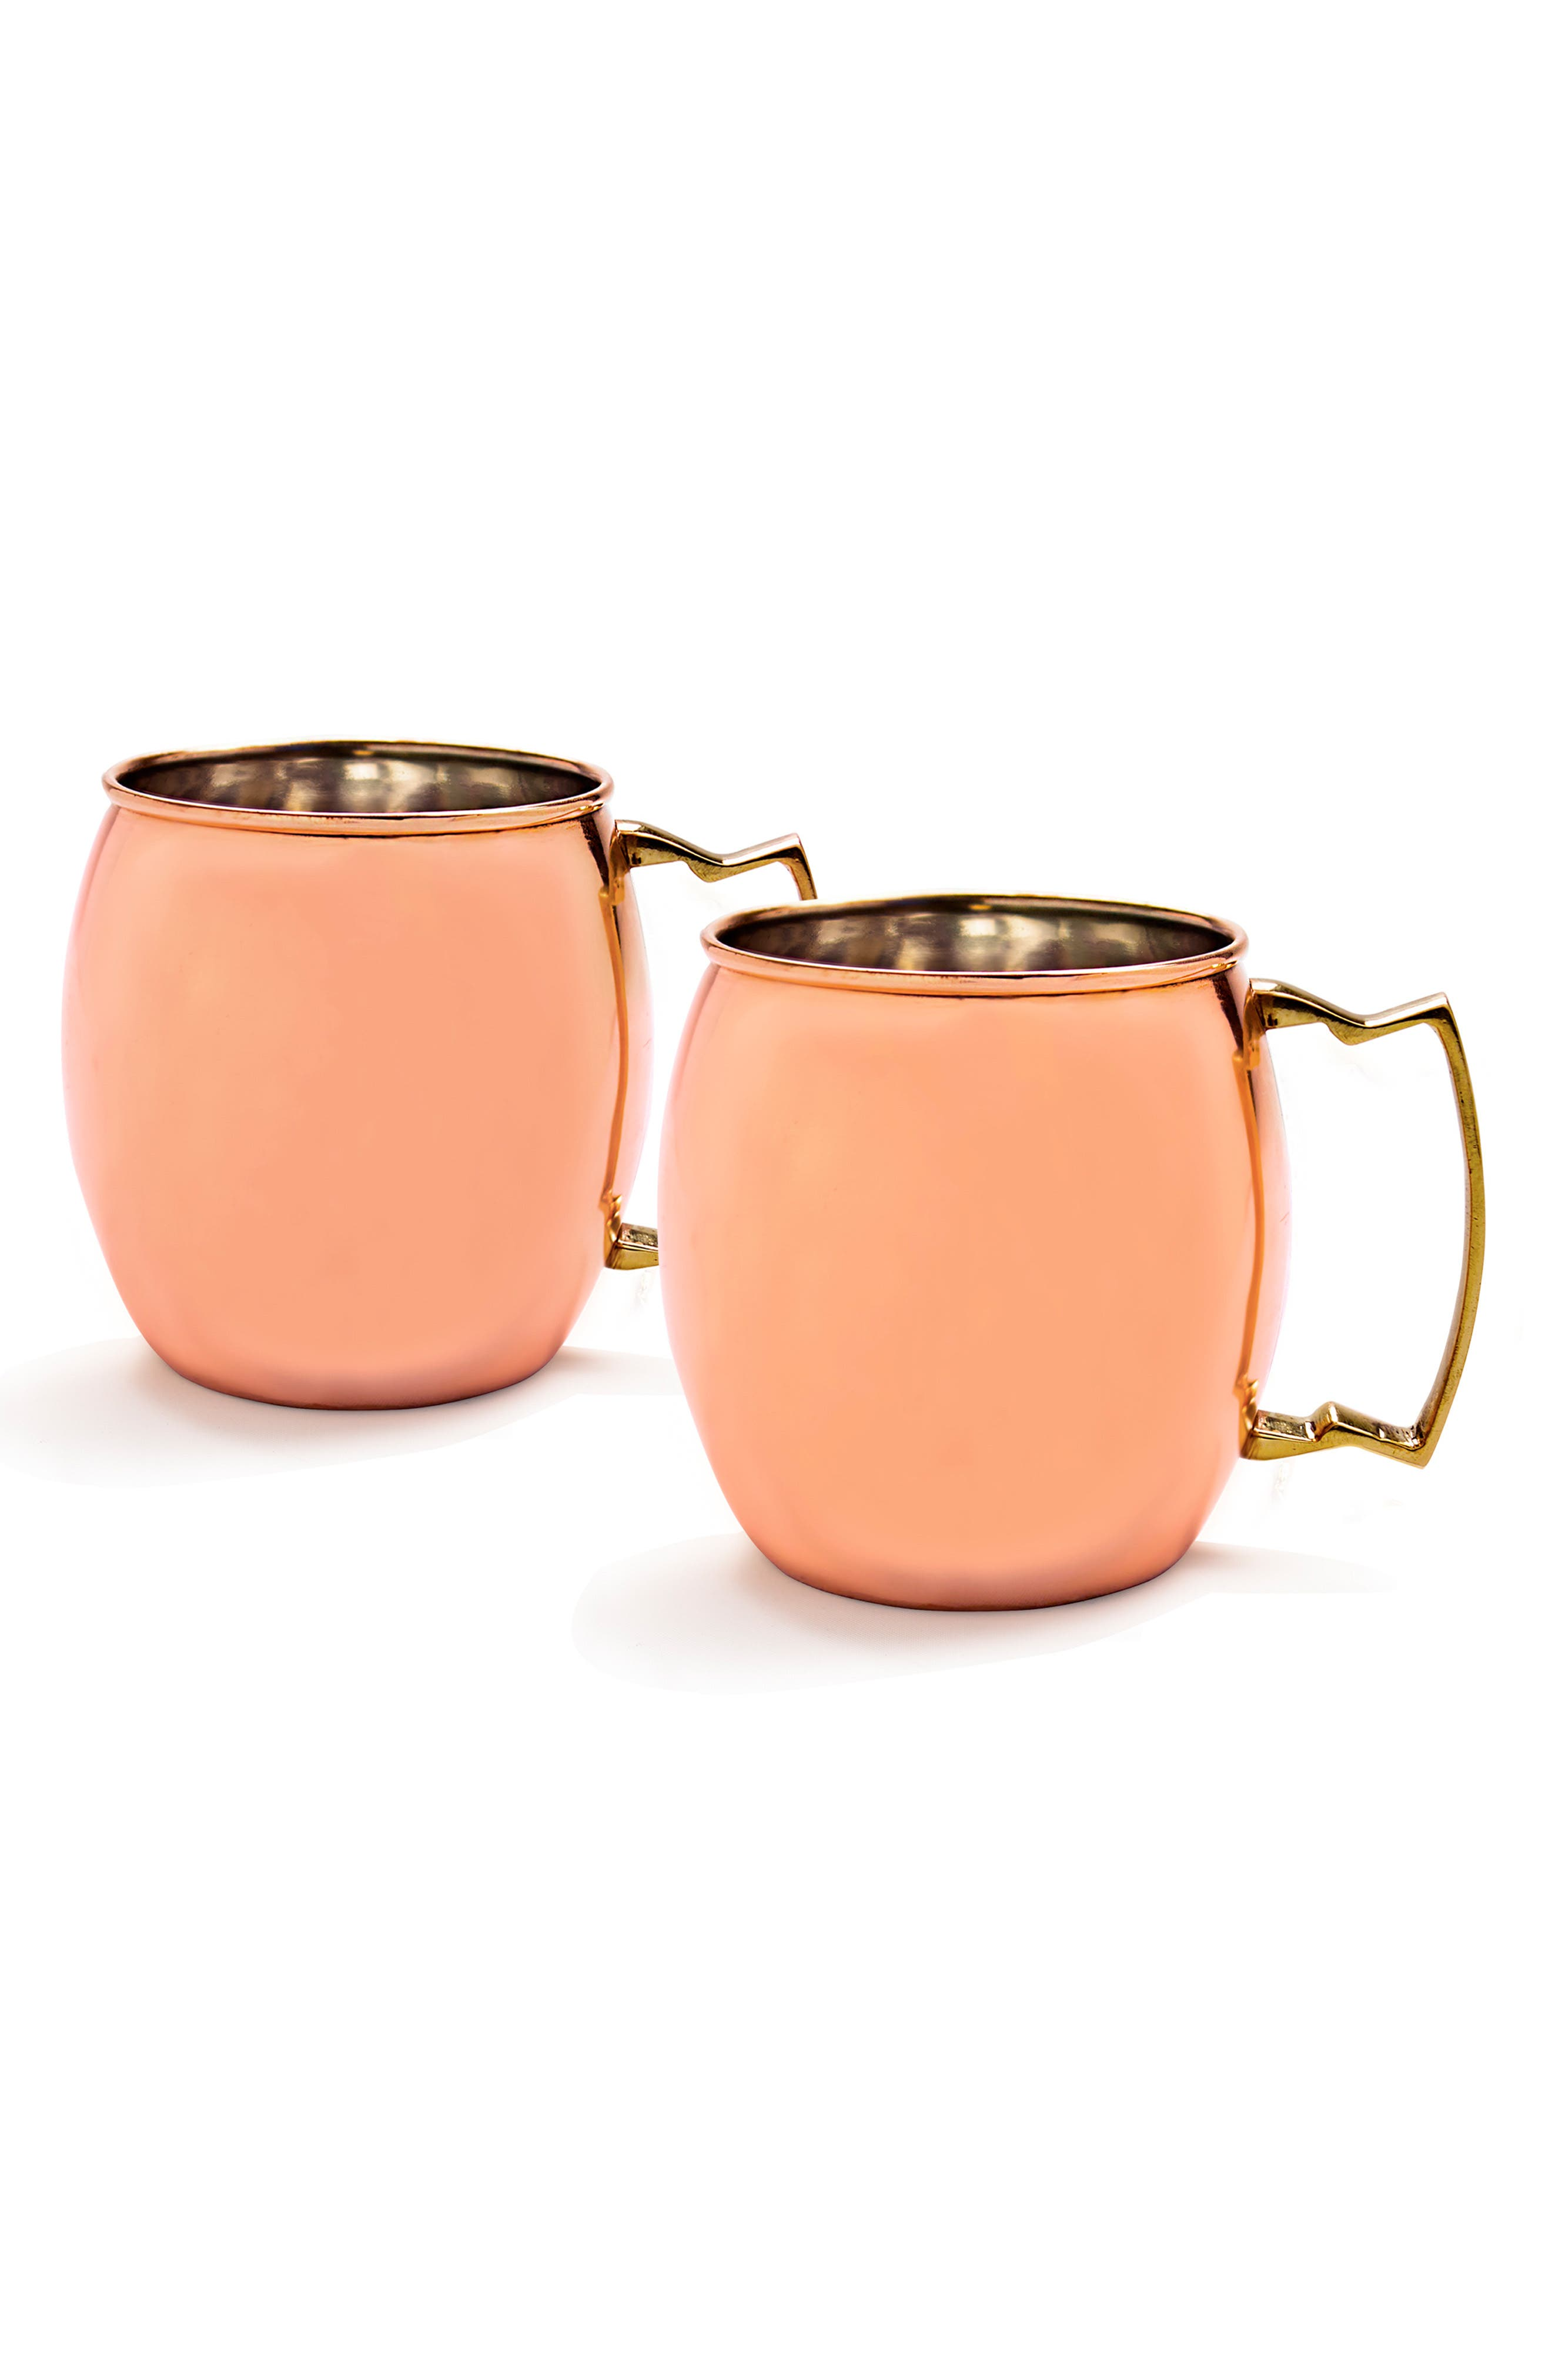 CATHY'S CONCEPTS, Monogram Moscow Mule Copper Mugs, Main thumbnail 1, color, 220